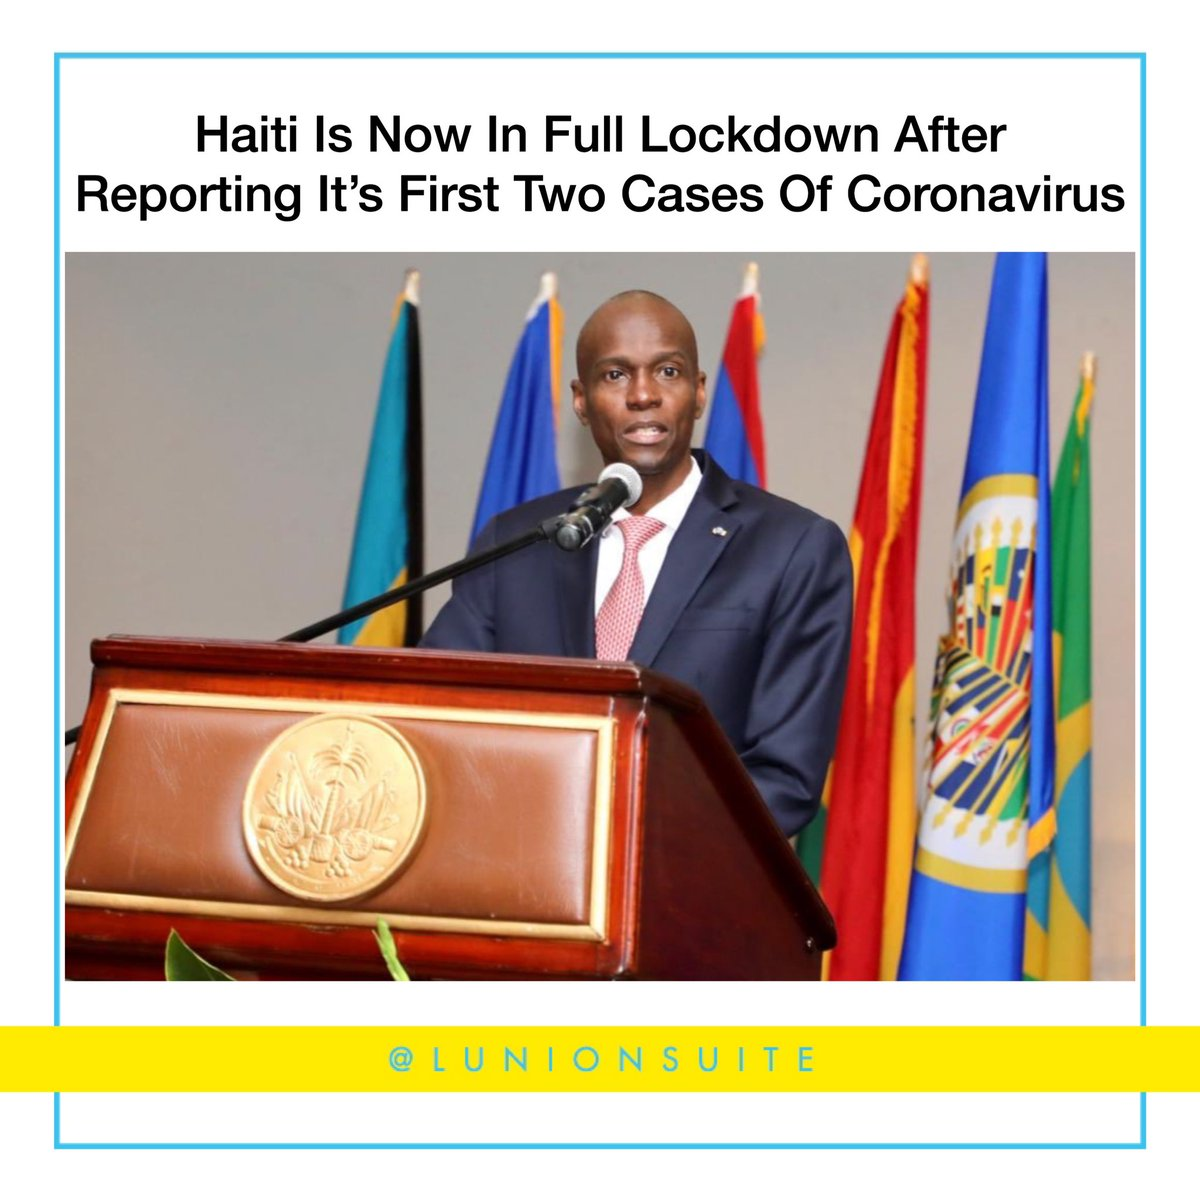 Haiti is now in full lockdown after President Jovenel Moise announced the country's first two cases of coronavirus during a press conference. As of tomorrow, Moise will close airports, schools, factories, seaports, and the border it shares with the Dominican Republic.